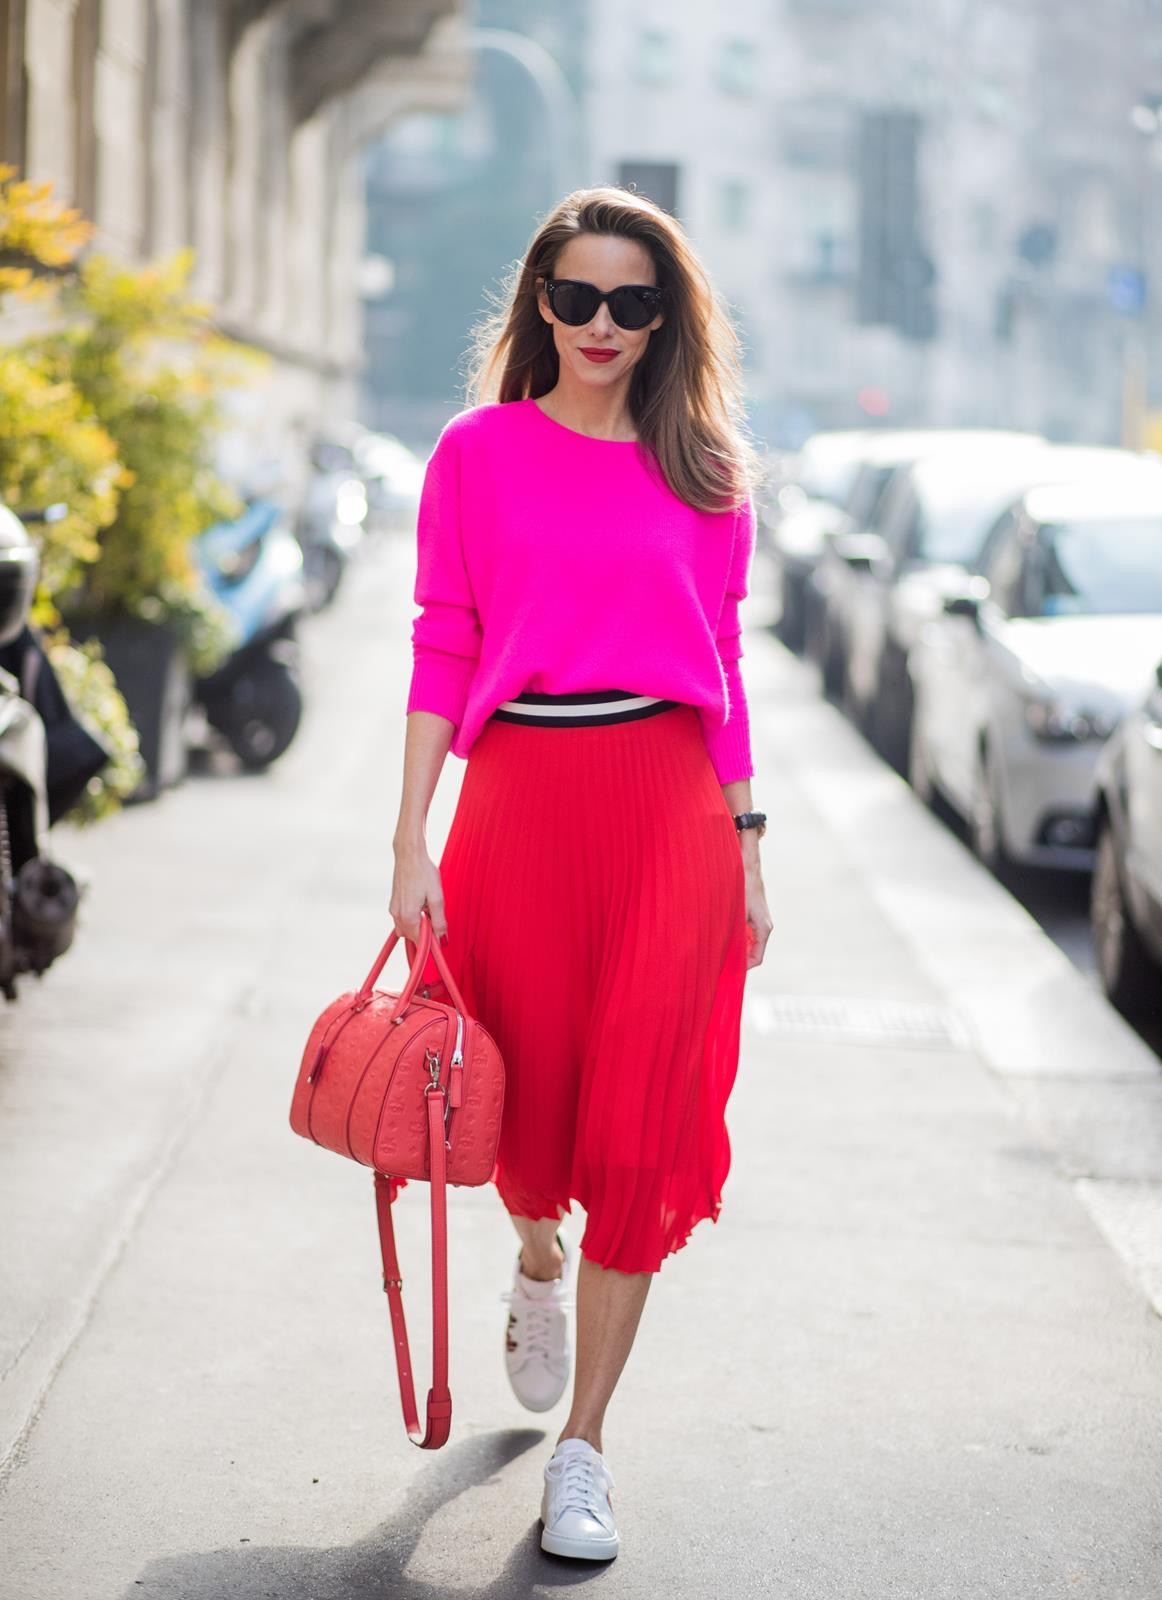 08586ca537f2 ... ITALY - FEBRUARY 21  Model and Blogger Alexandra Lapp wearing pink and  red · «